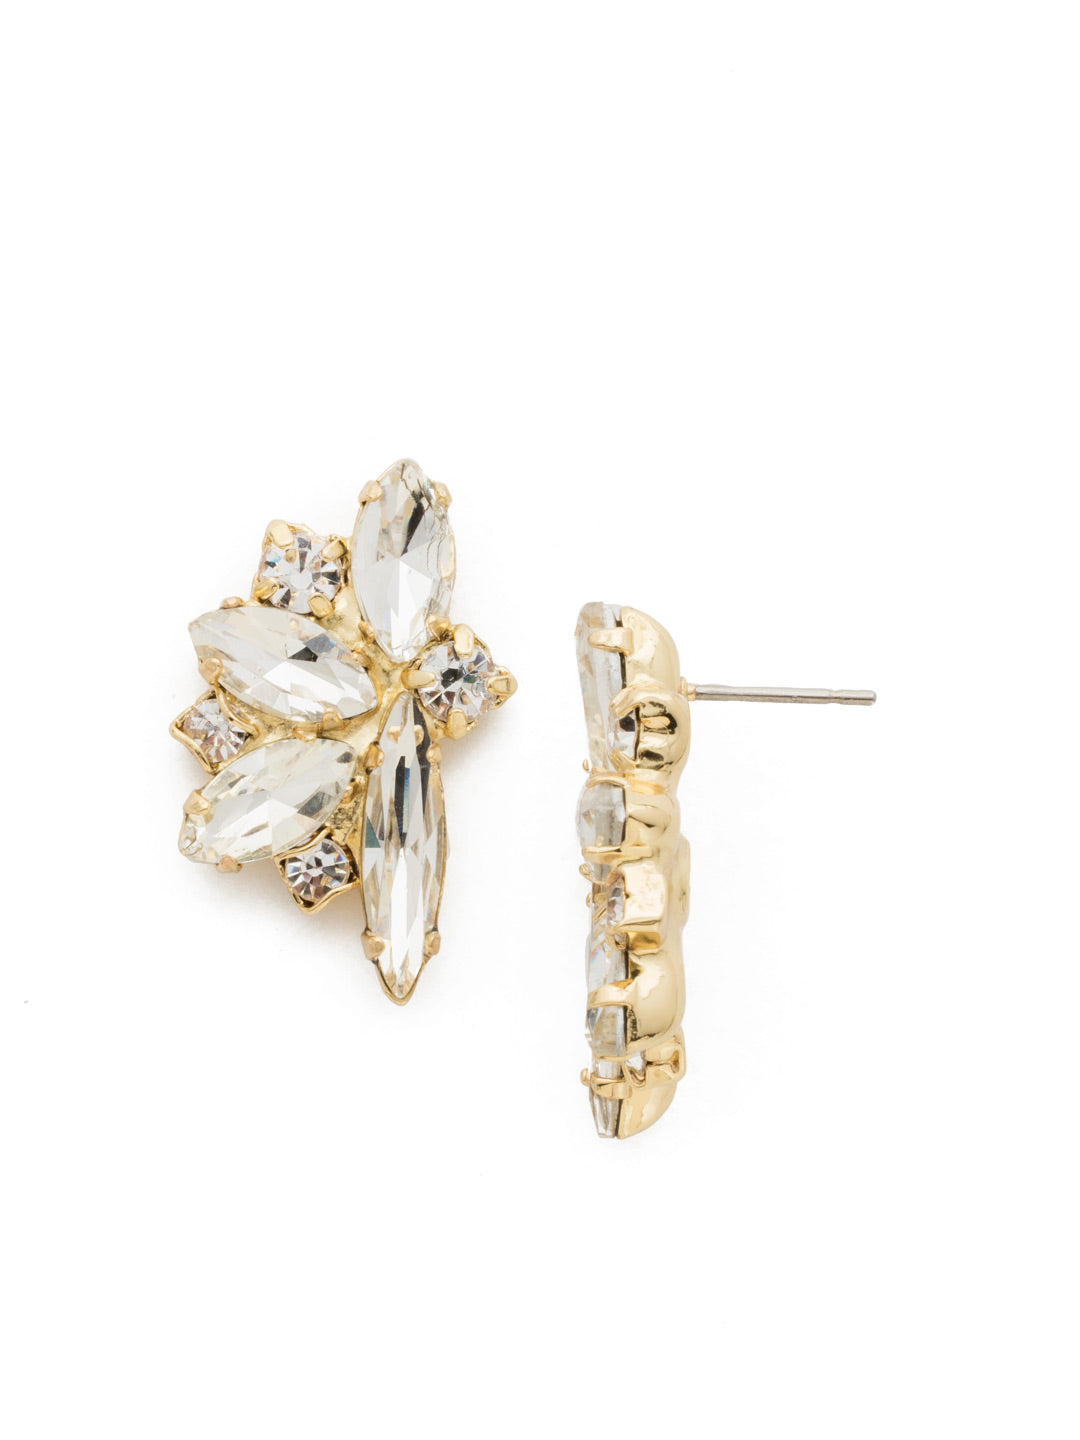 Fanned Navette Crystal Post Earring - ECZ21BGCRY